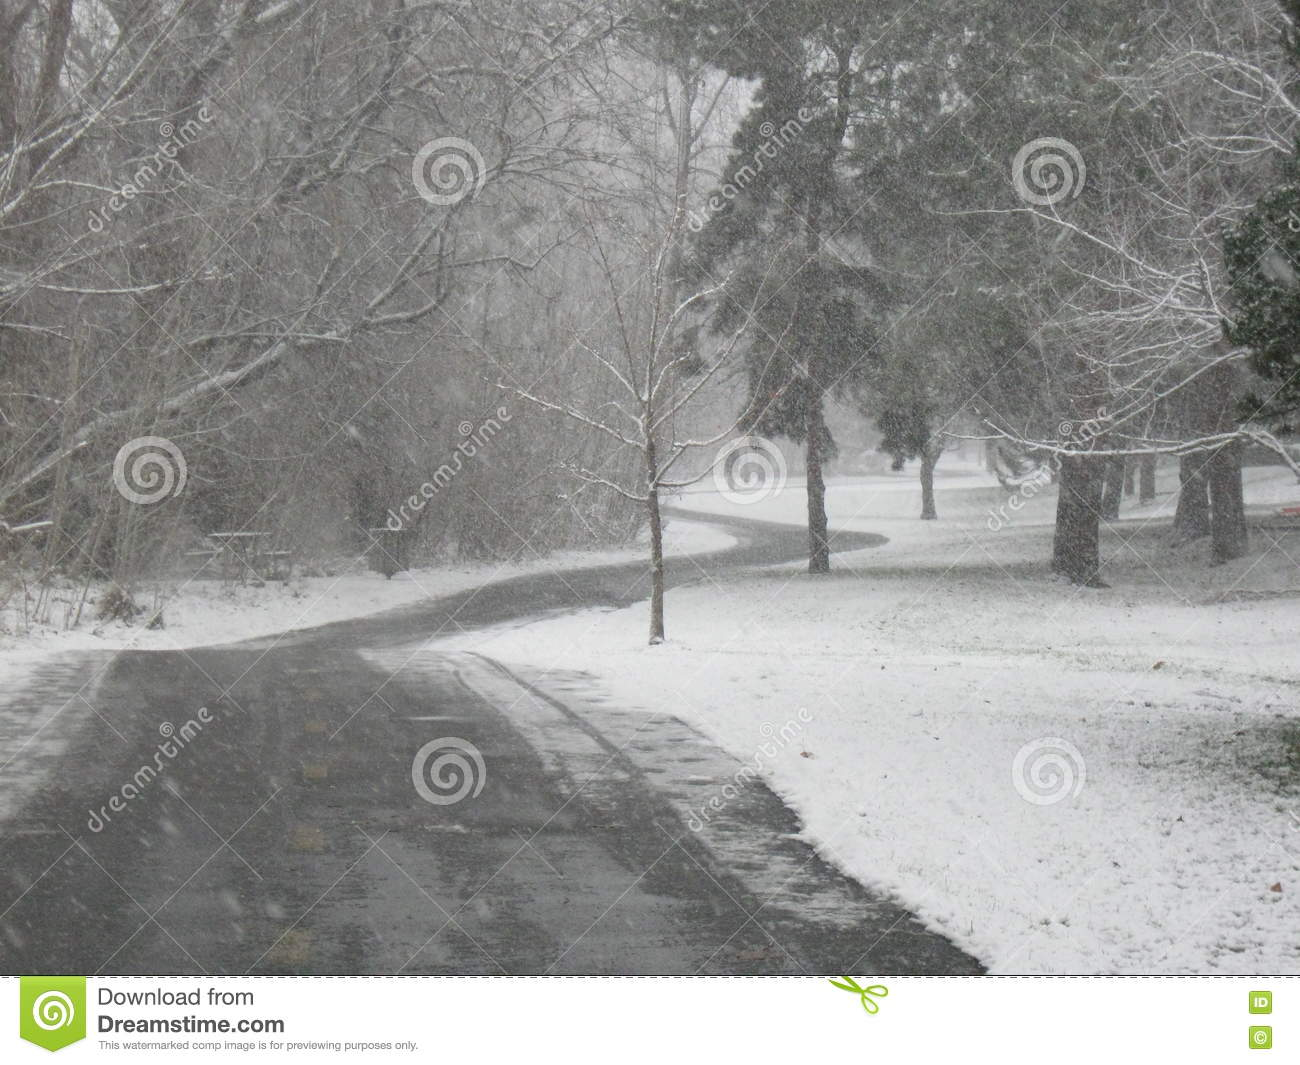 Hurrying in a Snowstorm on the Greenbelt Boise Idaho